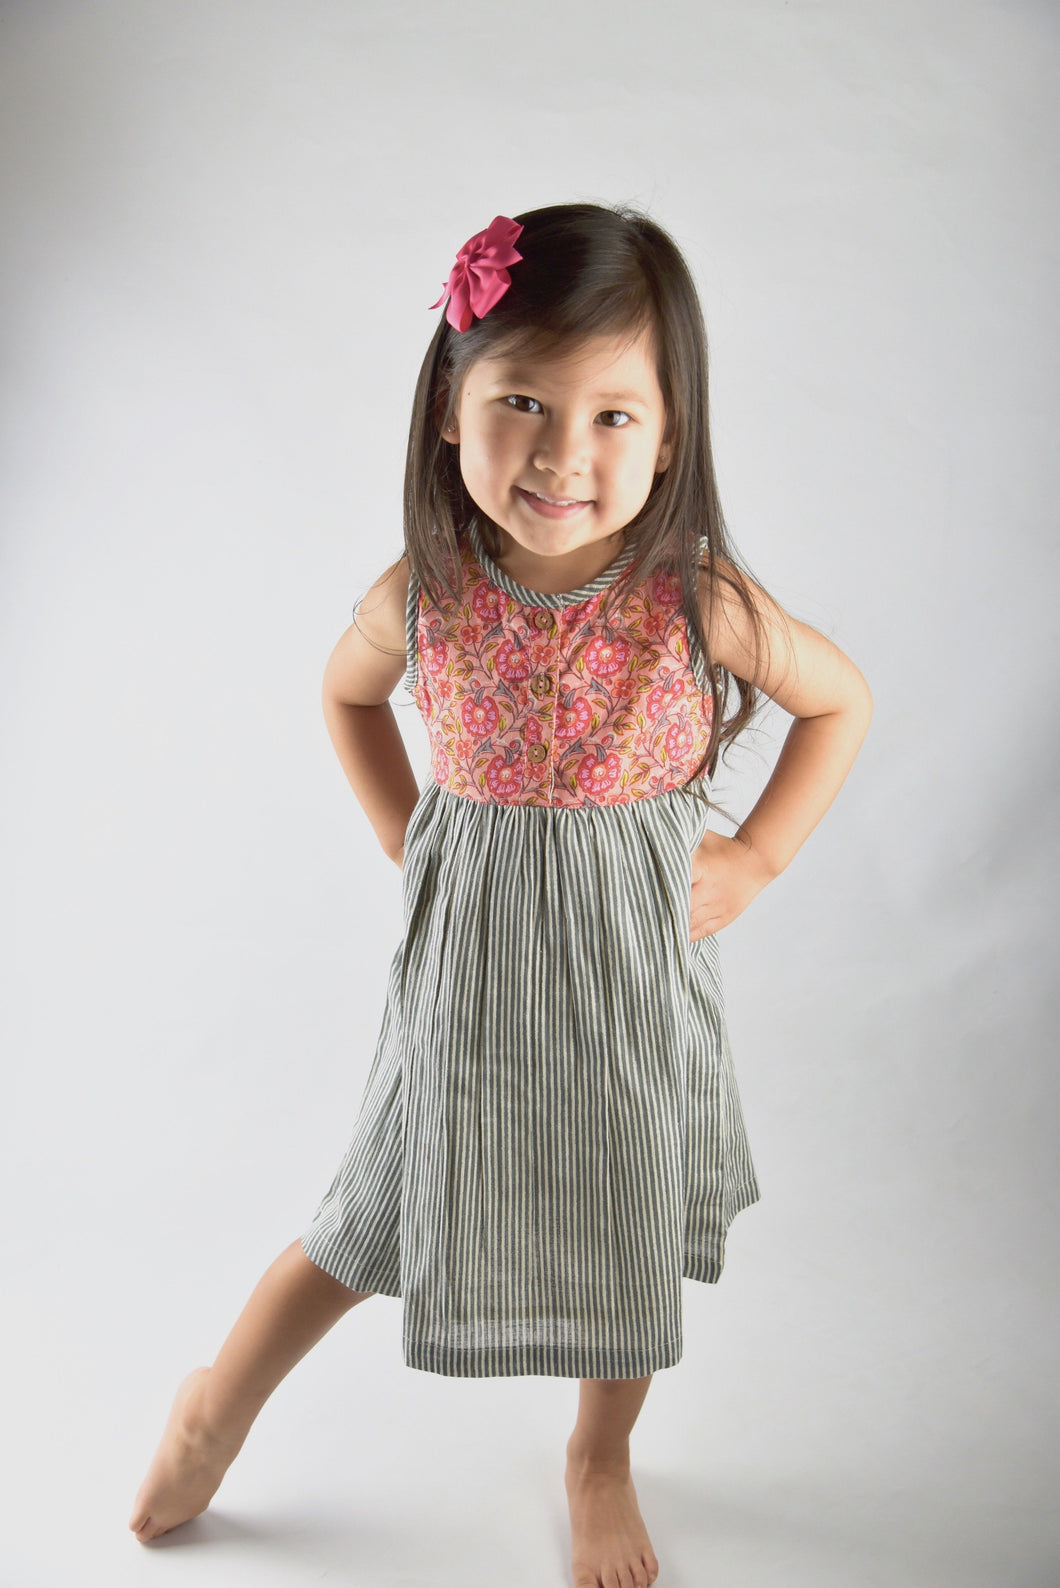 Floral And Grey Pin Stripe Dress - Kids Clothing, Dress - Girls Dress, Yo Baby Online - Yo Baby